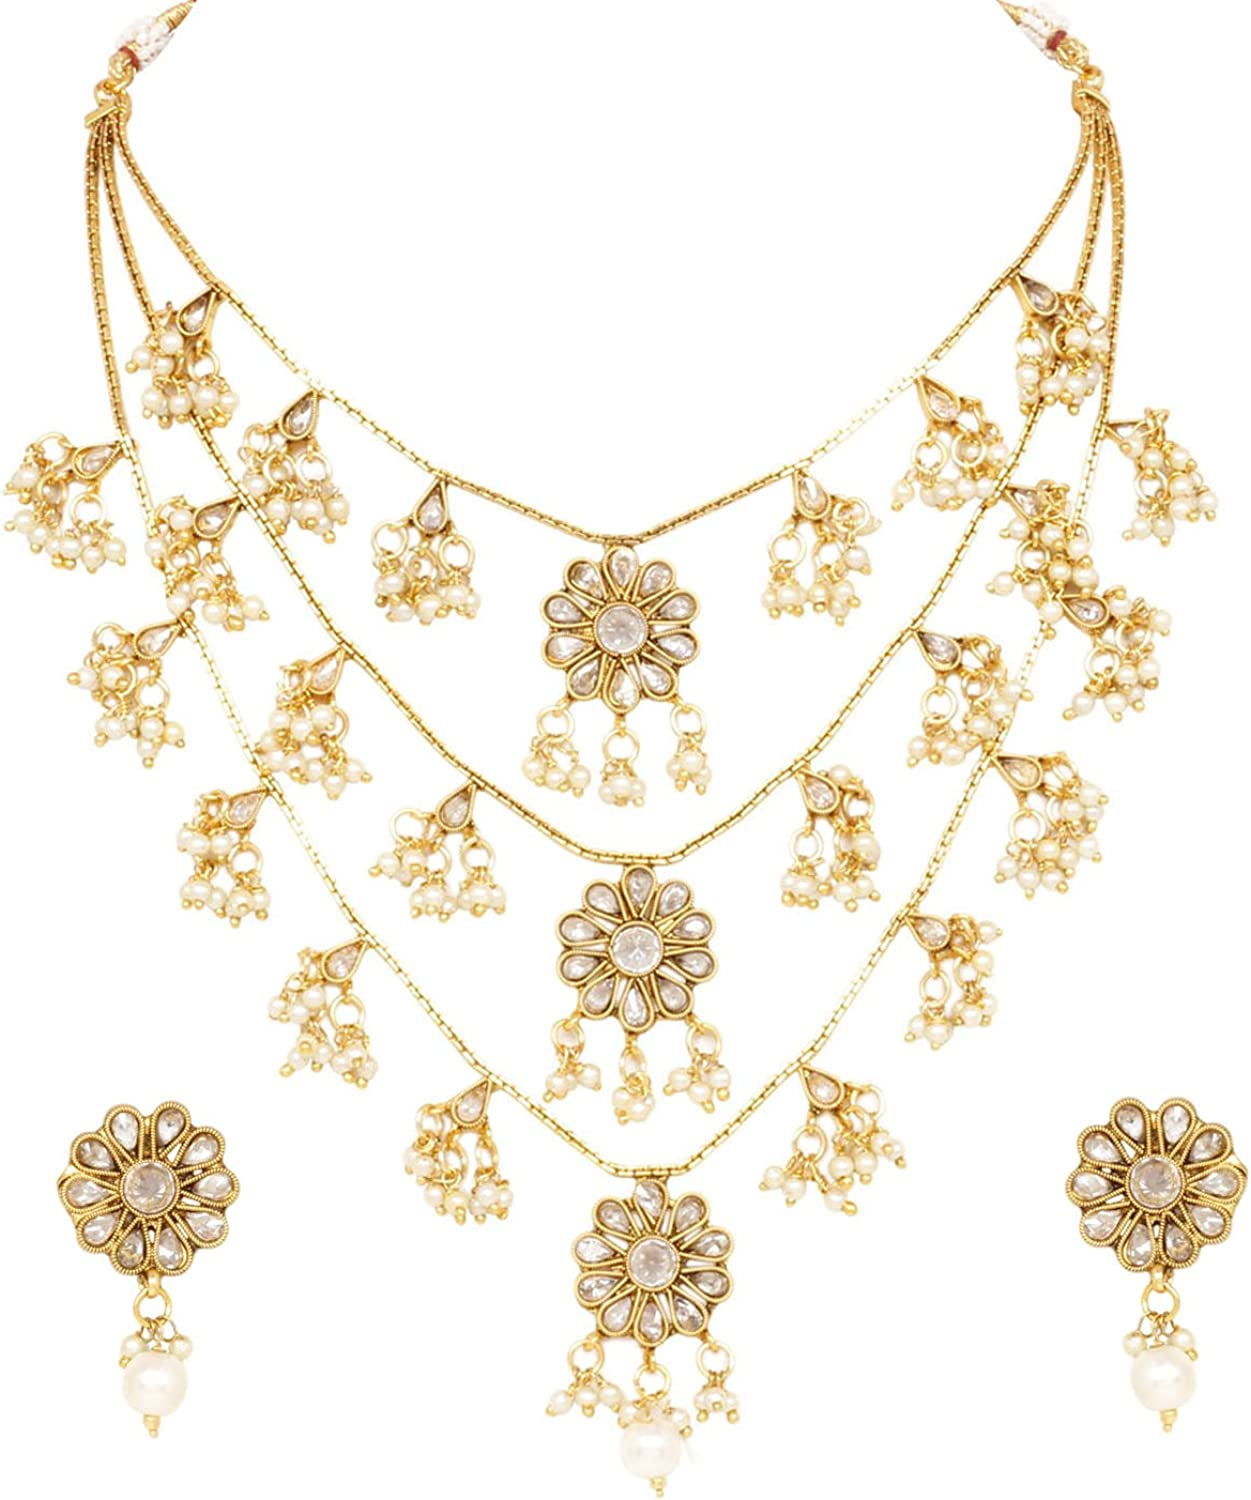 Sanara Indian Bollywood Gold Plated Exclusive Crystal 3 Line Rani Haar Necklace Earrings Set Jewelry